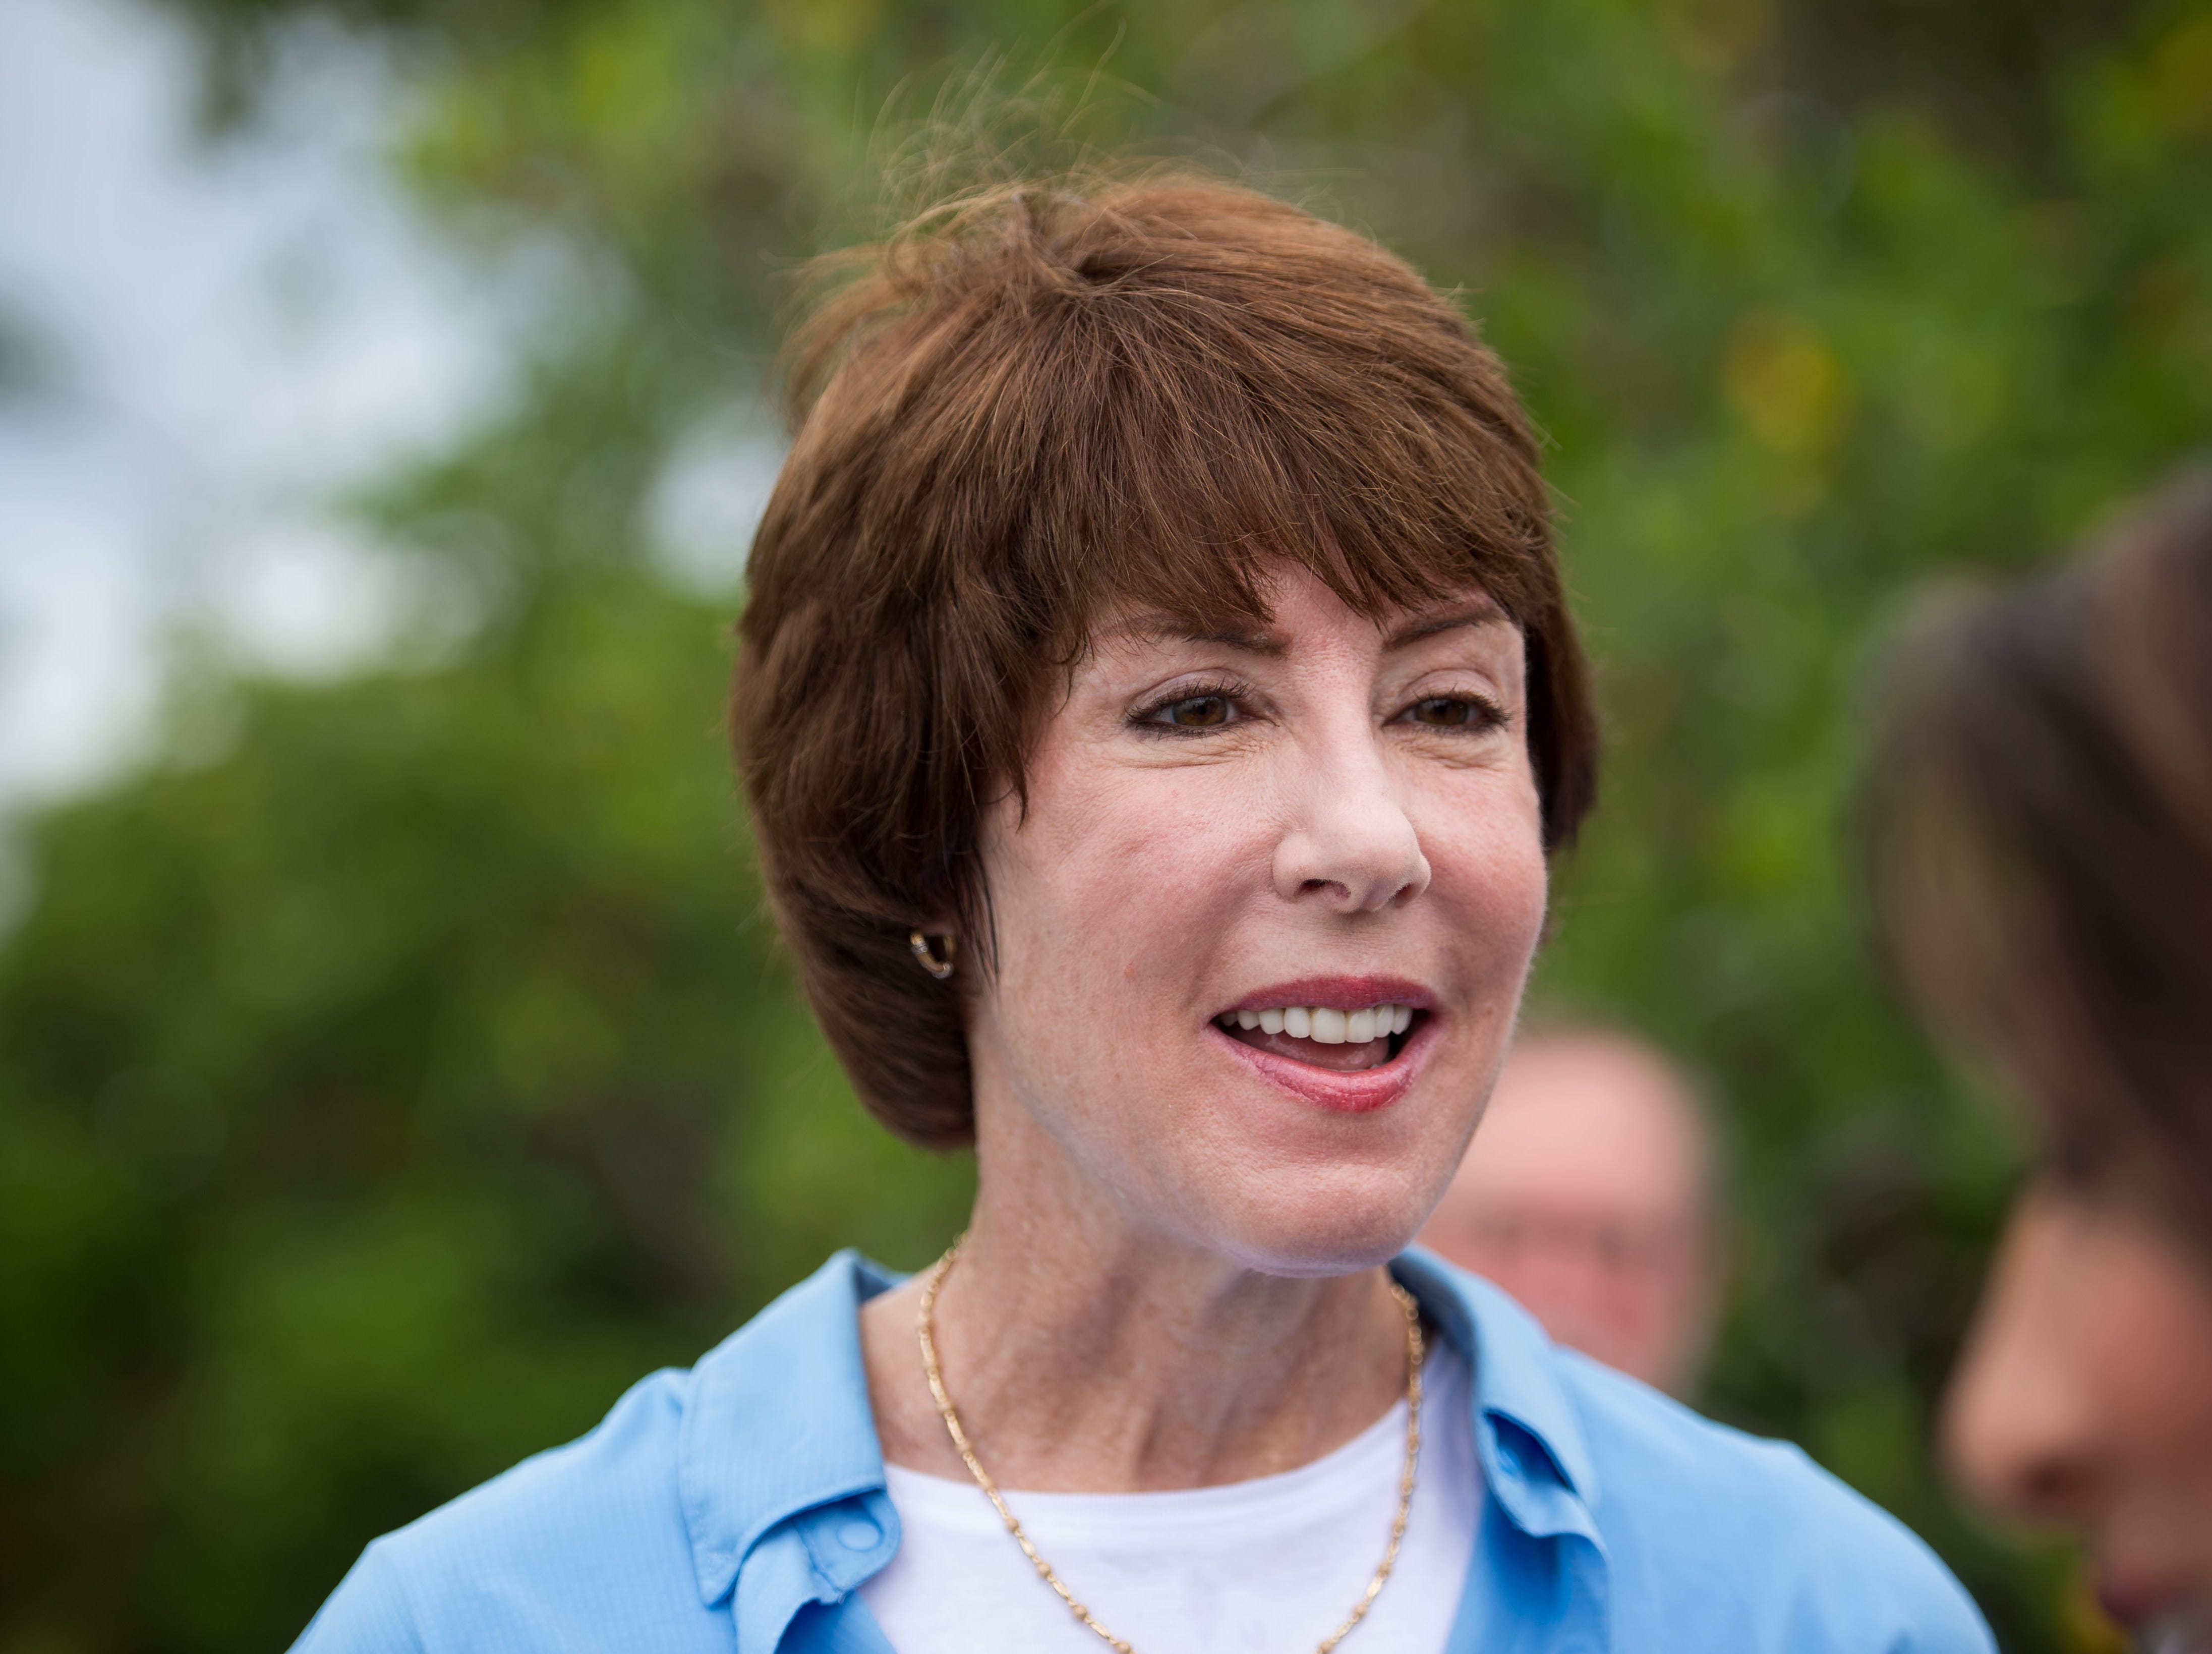 Democratic gubernatorial hopeful Gwen Graham visits Shepard Park in Stuart on Friday, Aug. 24, 2018, to speak with Ocean Research & Conservation Association representatives about the harmful effects of blue-green algae in Florida.